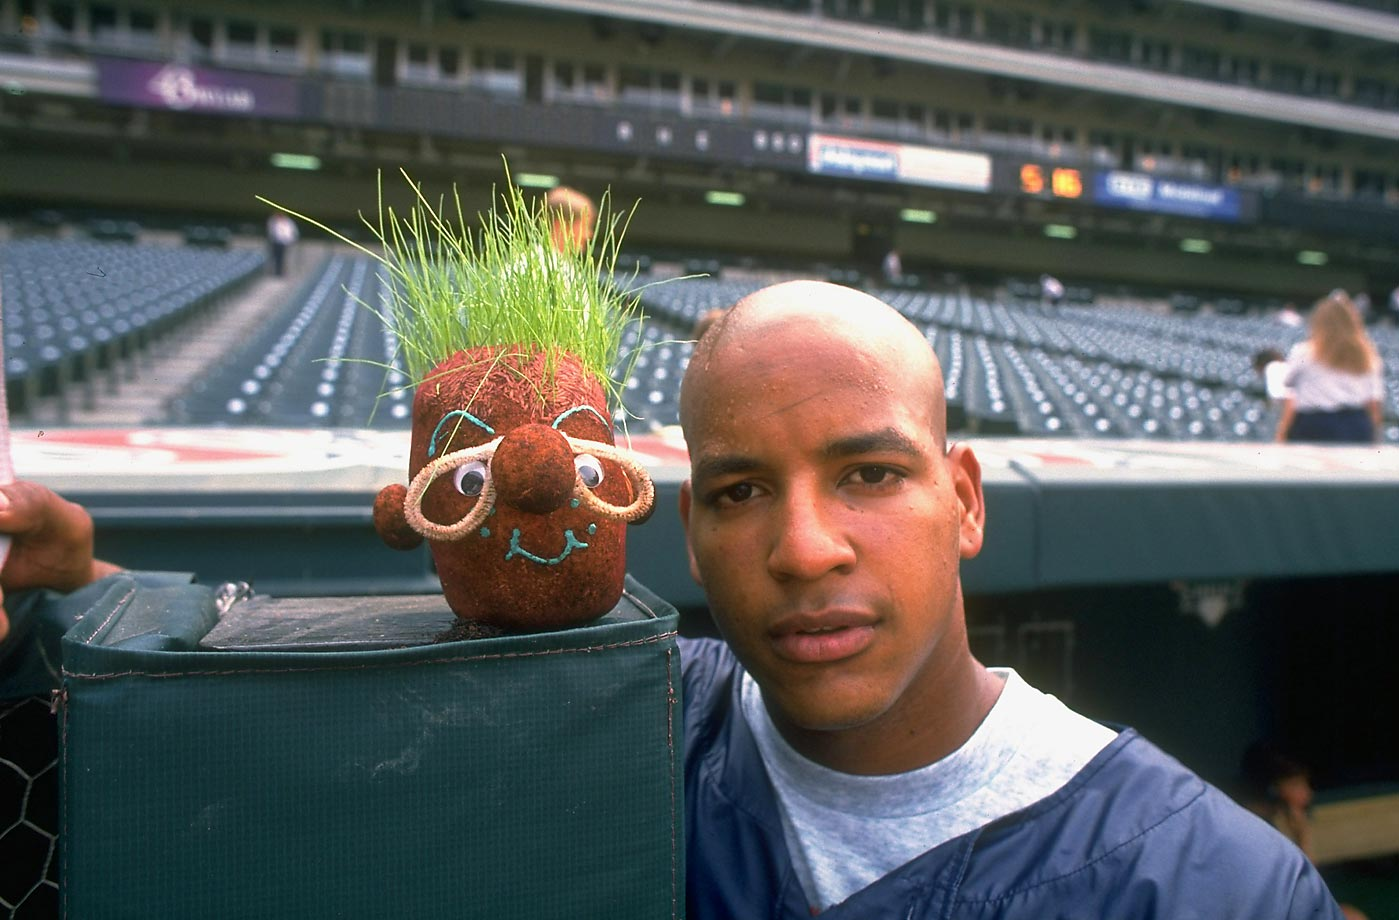 Seen without his trademark dreadlocks, a bald Manny Ramirez stands next to a hairy little effigy in this 1995 photo. Eighteen years later, a minor league contract with a Texas Rangers affiliate would require Ramirez to once again part with his hair.